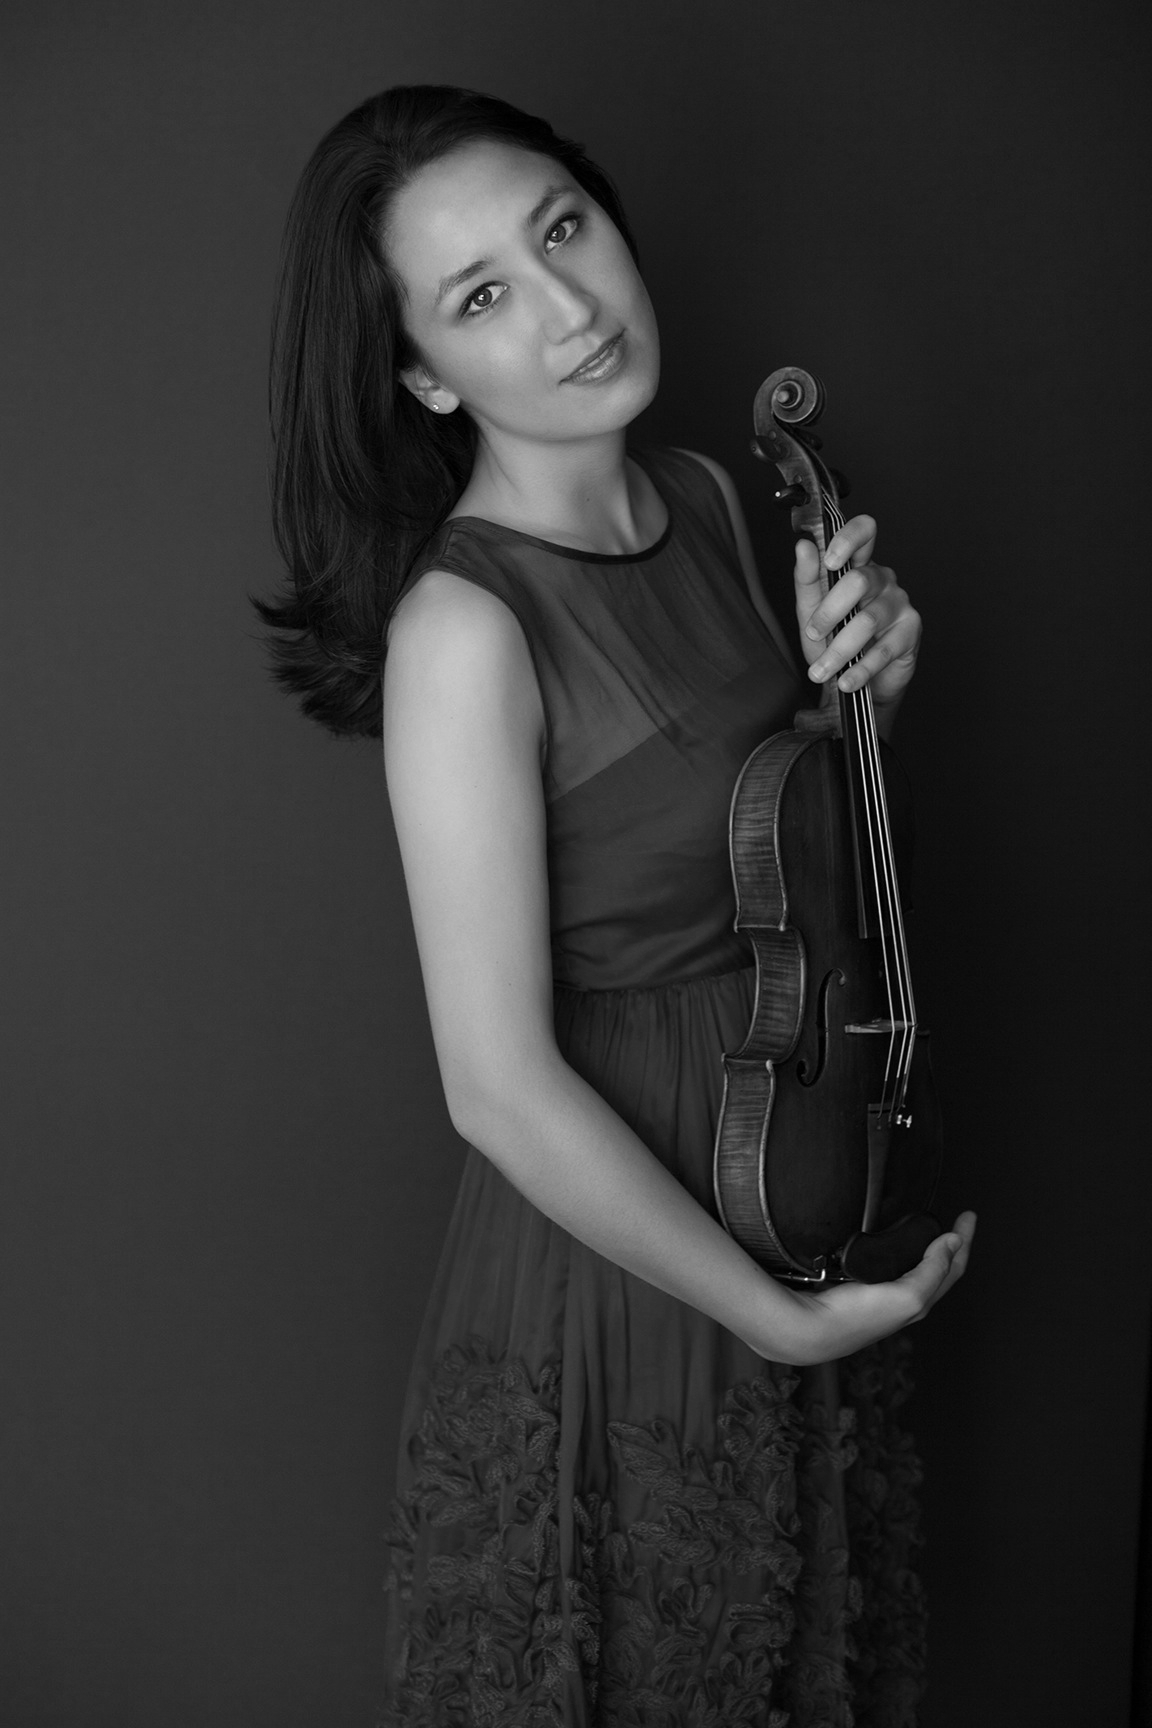 Annamarie Arai  Without a conductor, I have gotten to know the intricacies of our music more confidently and with stronger convictions. It's refreshing to share the duty of figuring out what the music means and how we're going to collectively convey that meaning.